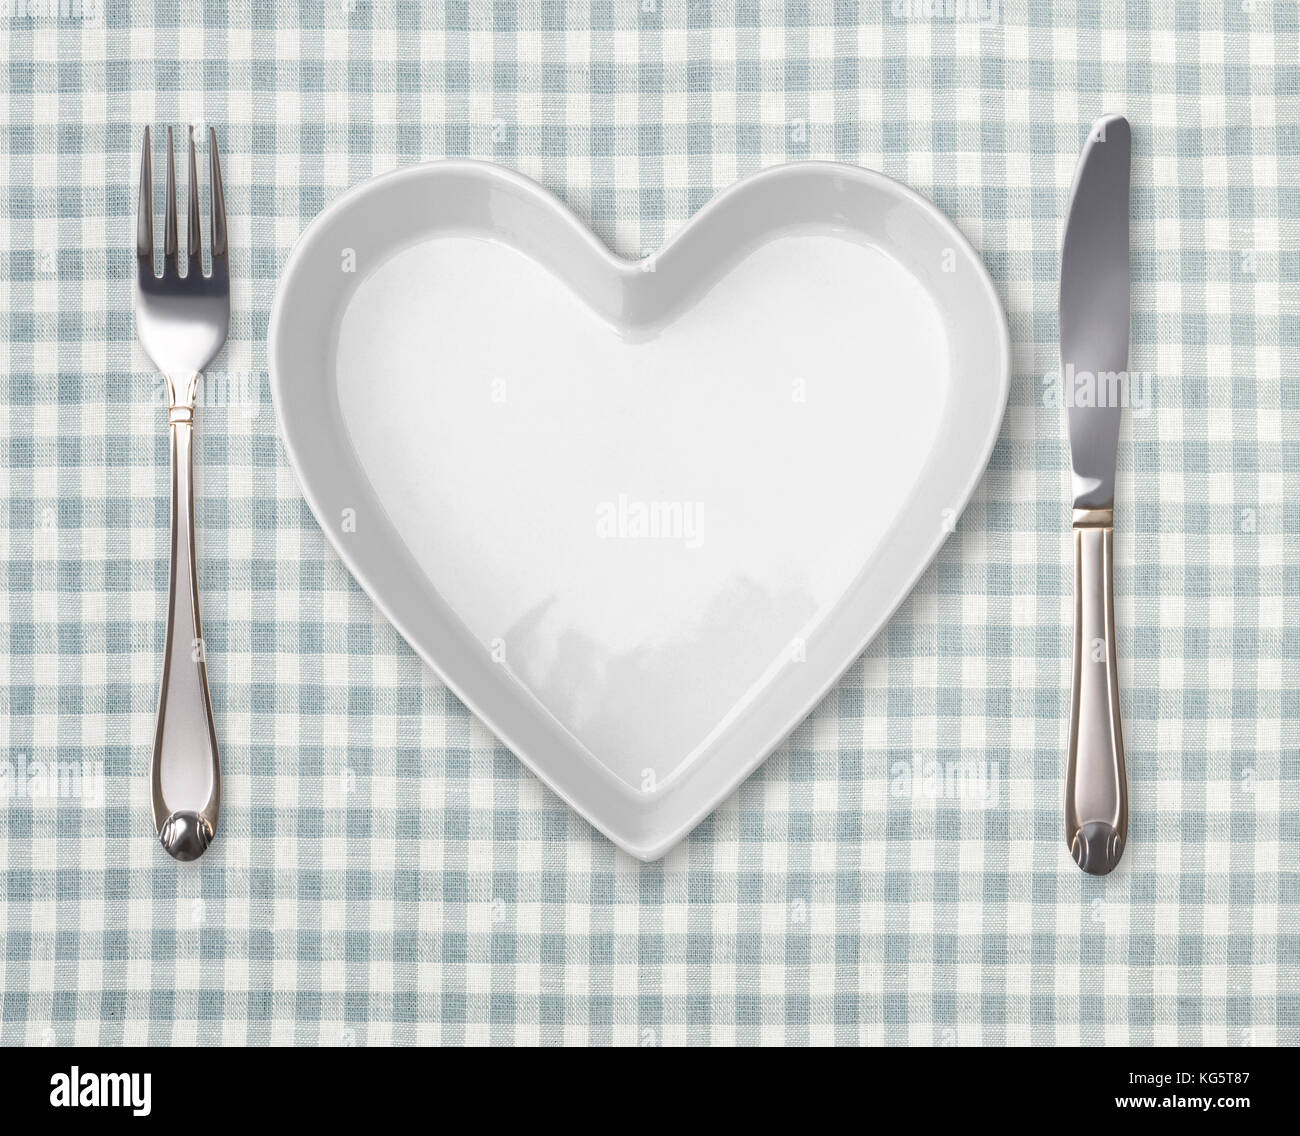 table appointments with heart shaped plate template with empty